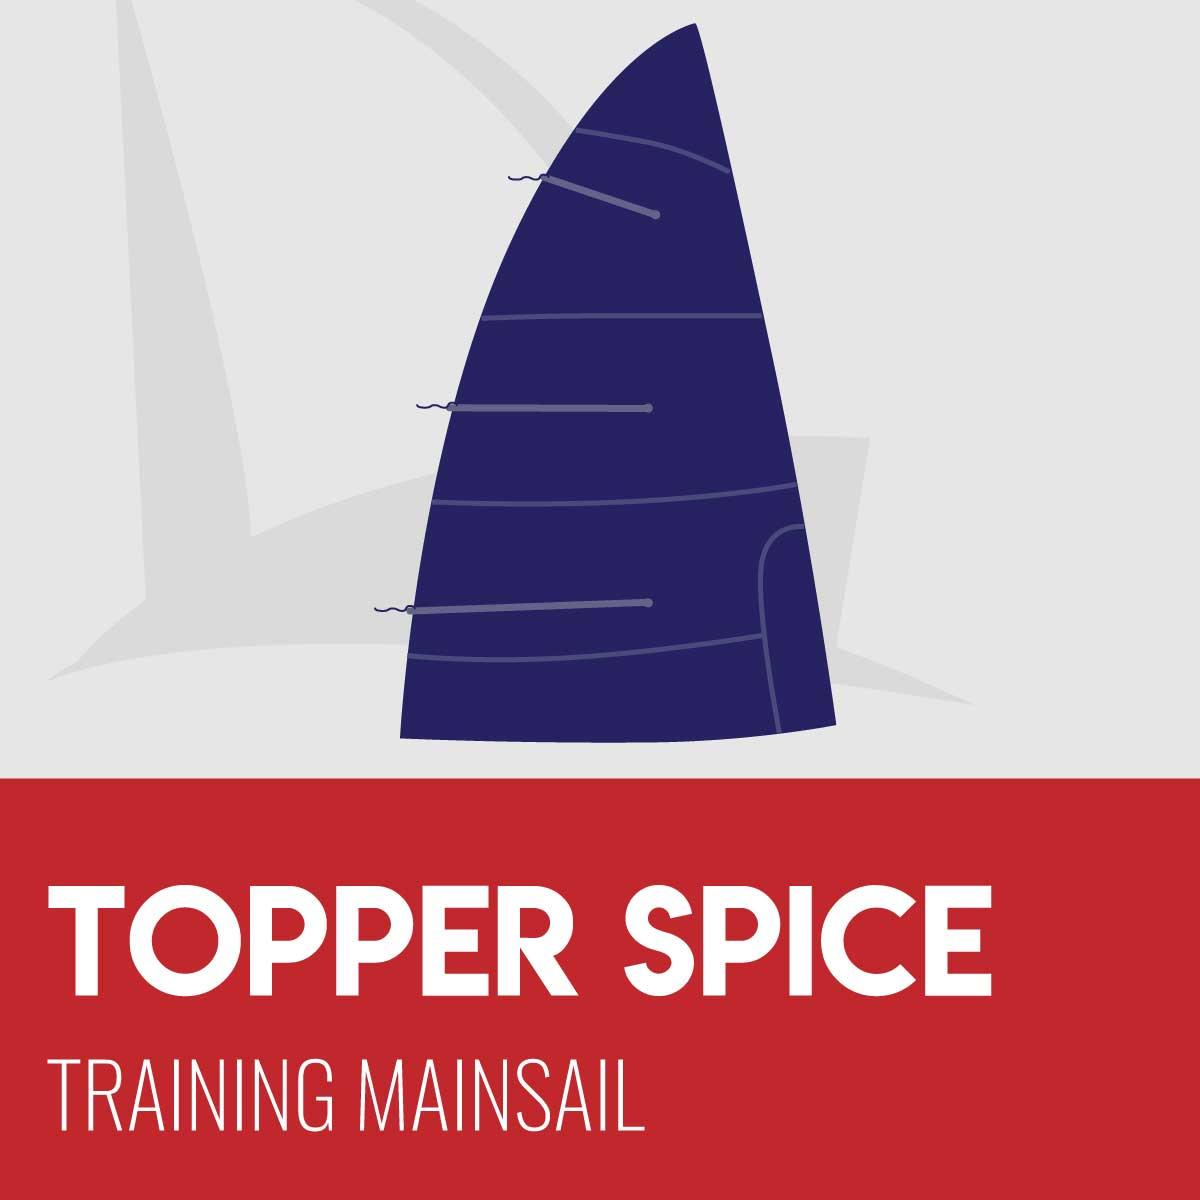 Topper Spice Training Mainsail